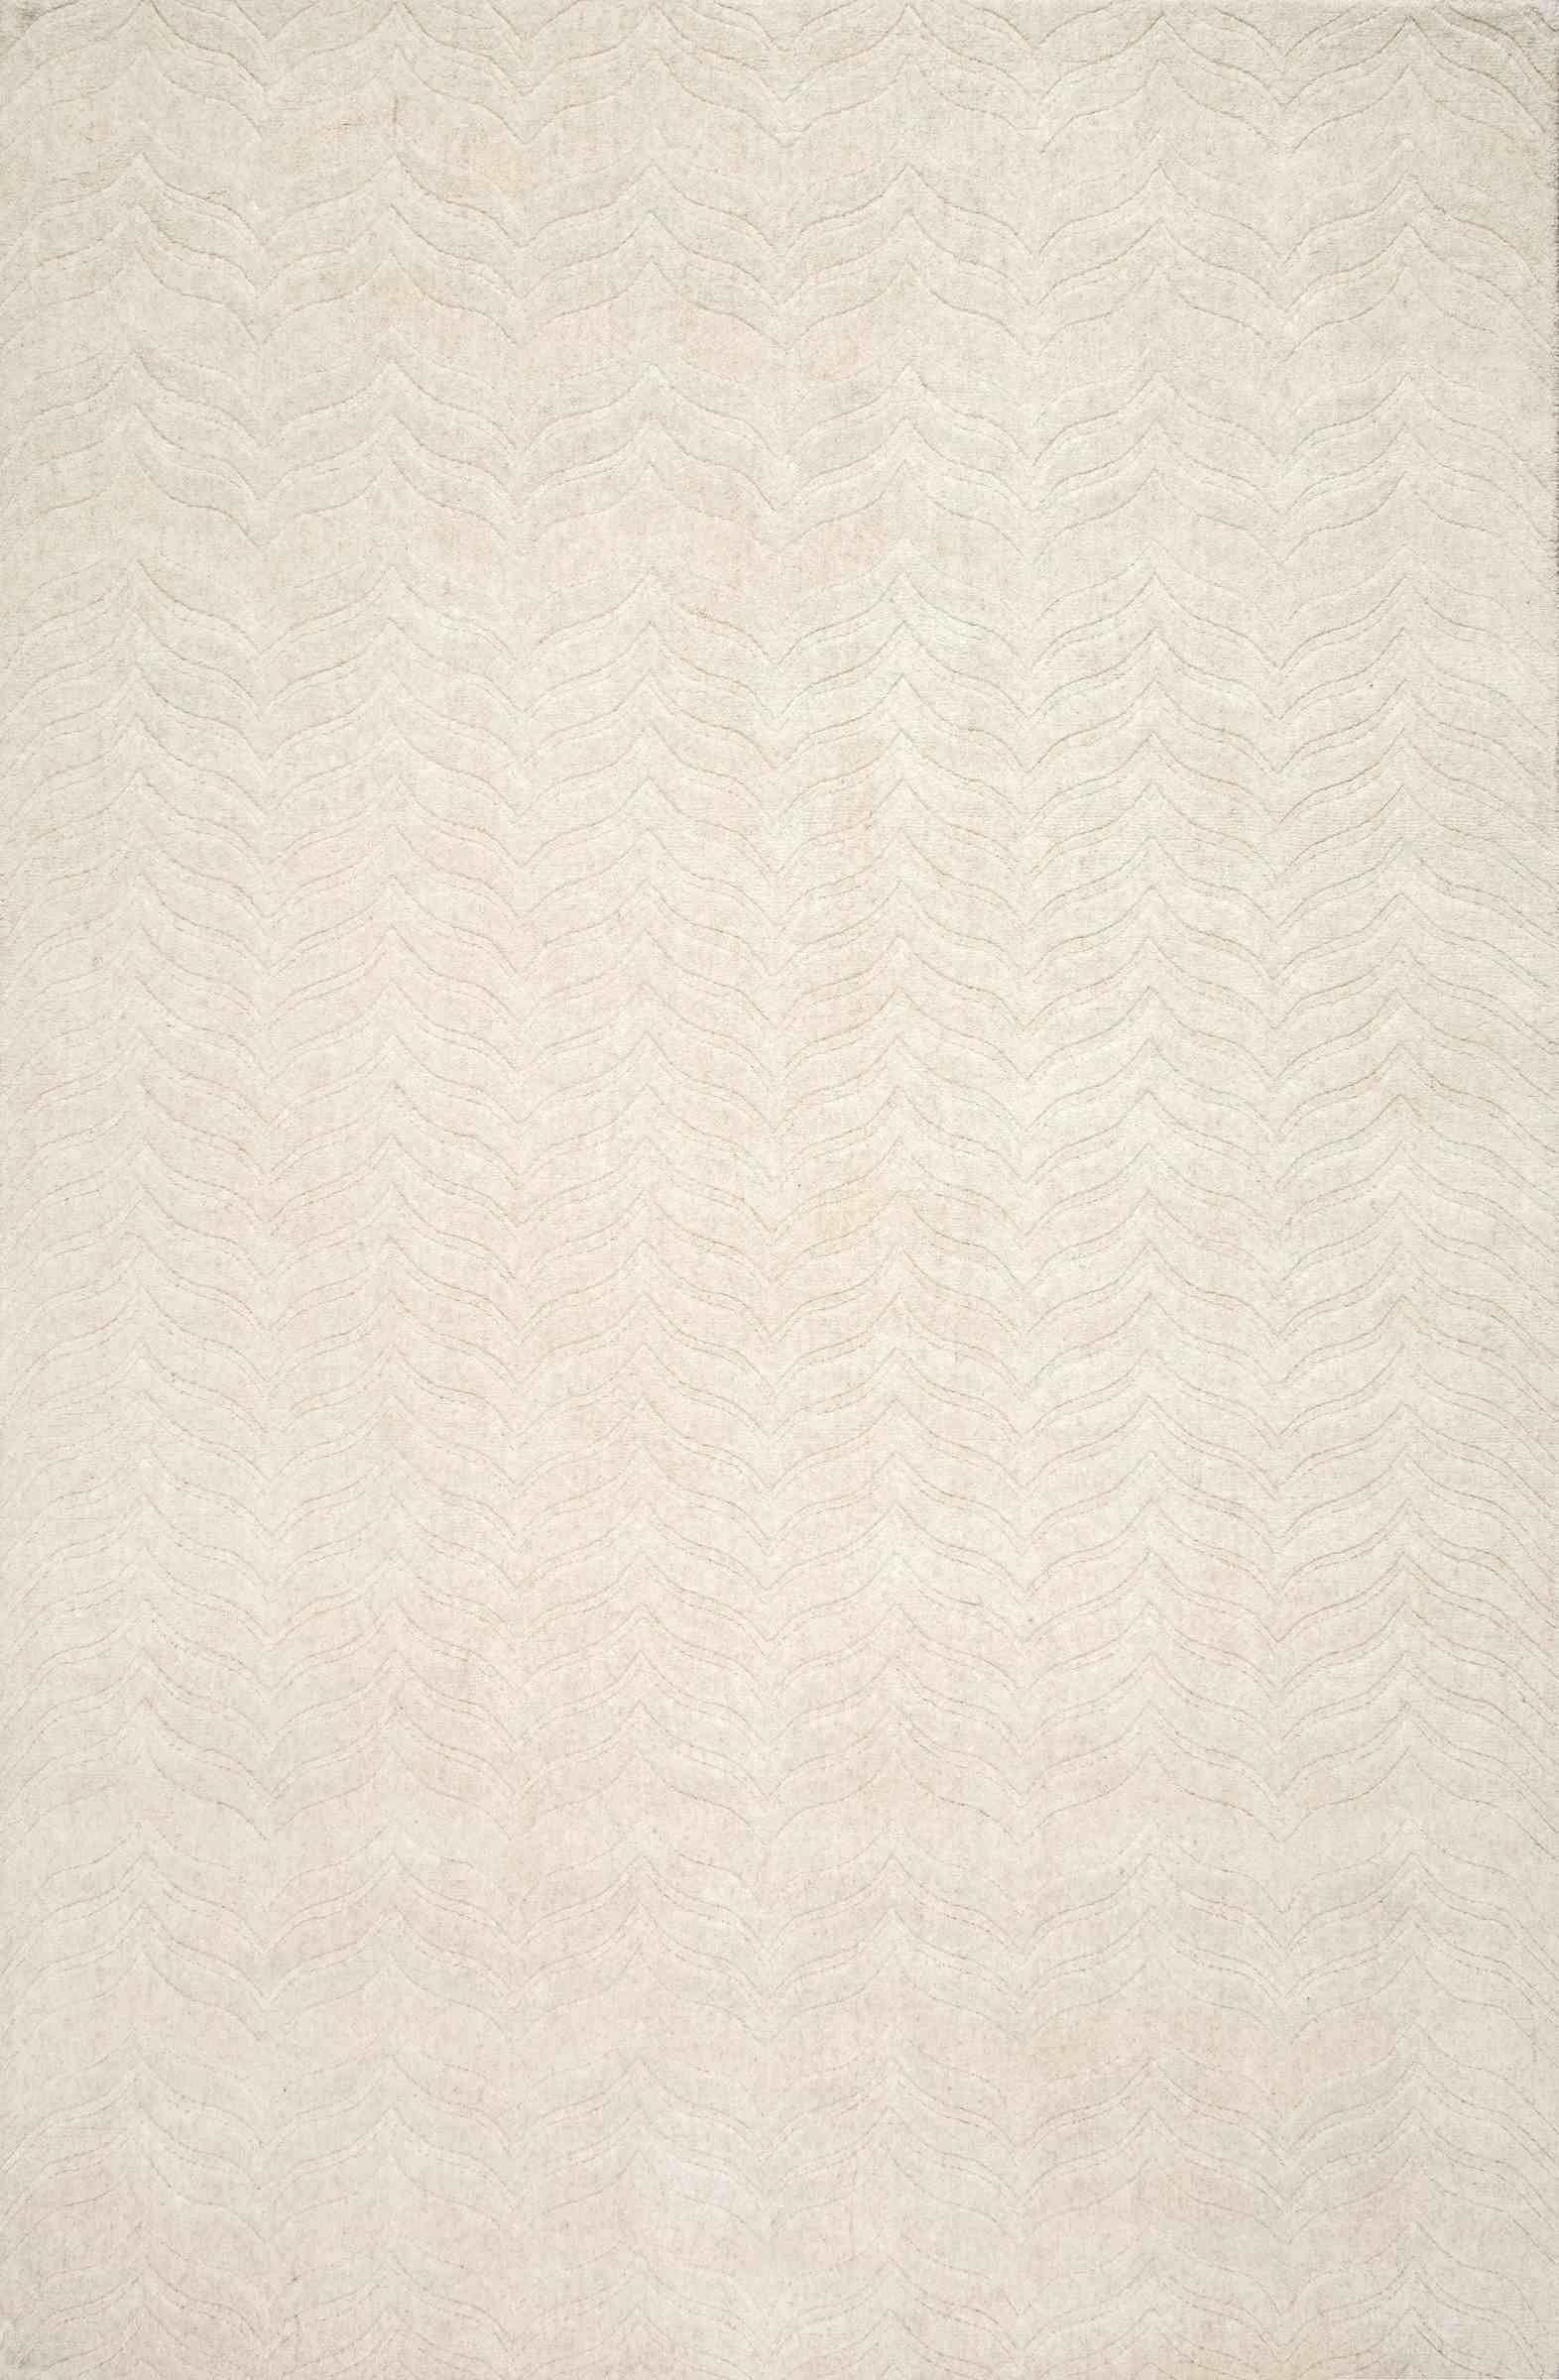 Myron Hand-Woven Ivory Area Rug Rug Size: Rectangle 7'6